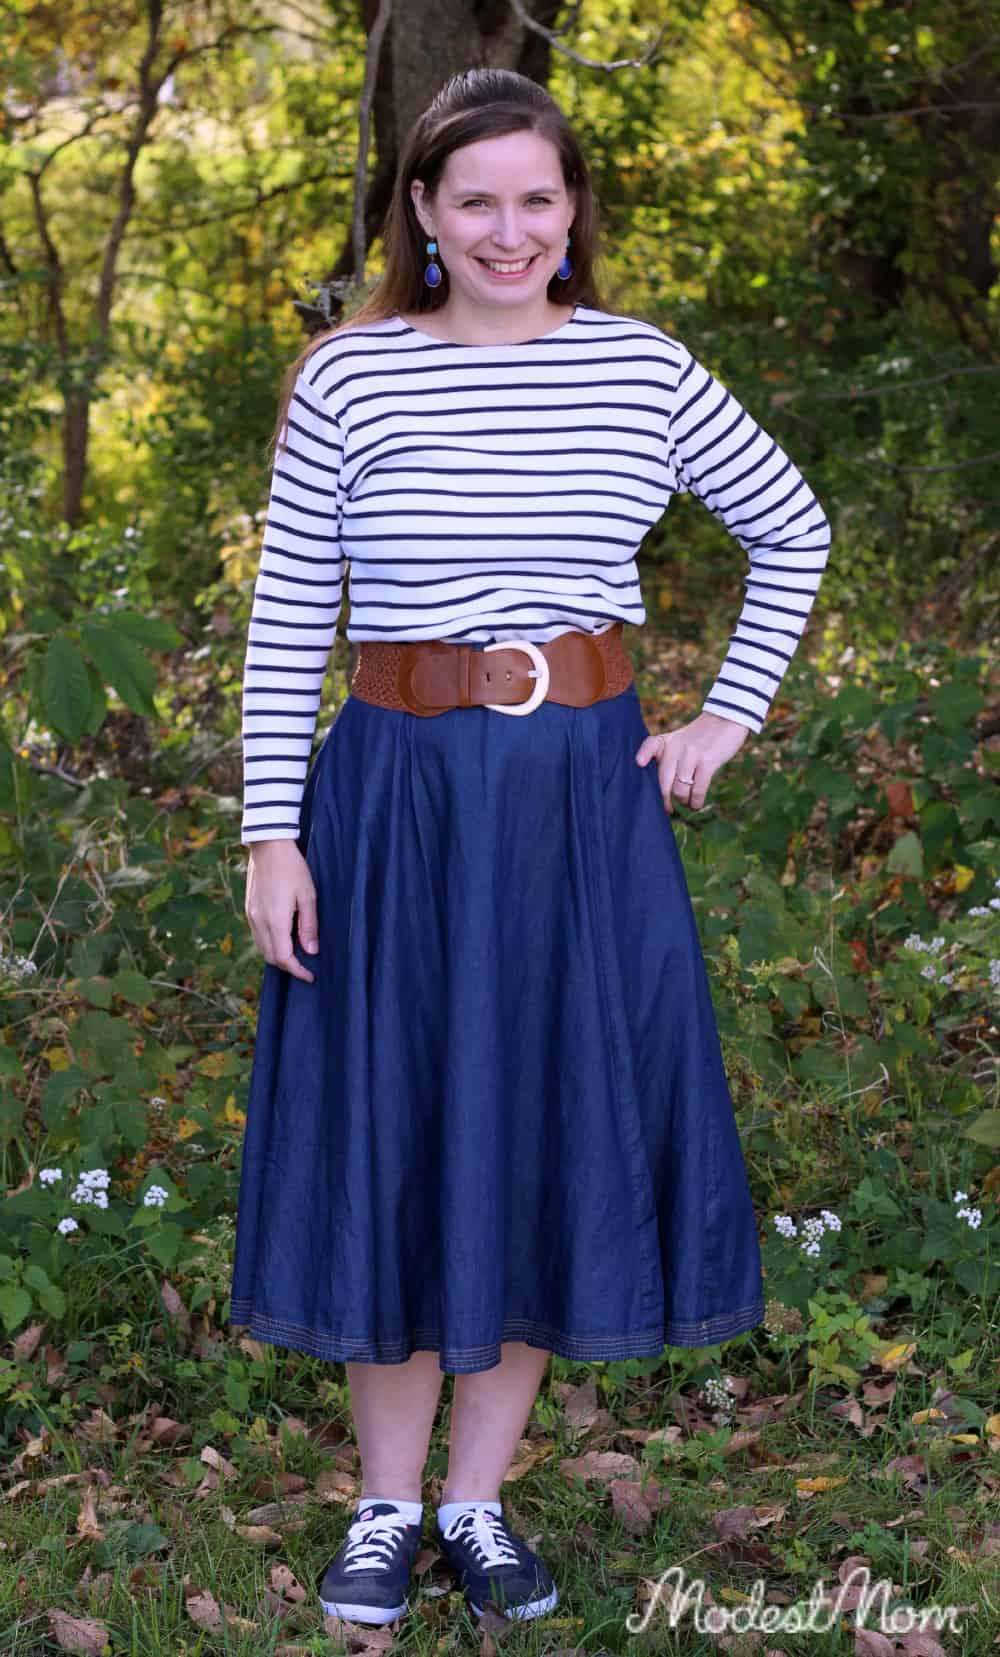 b61b879a3 Chambray skirt with a striped black and white long sleeve top made a good  outfit for